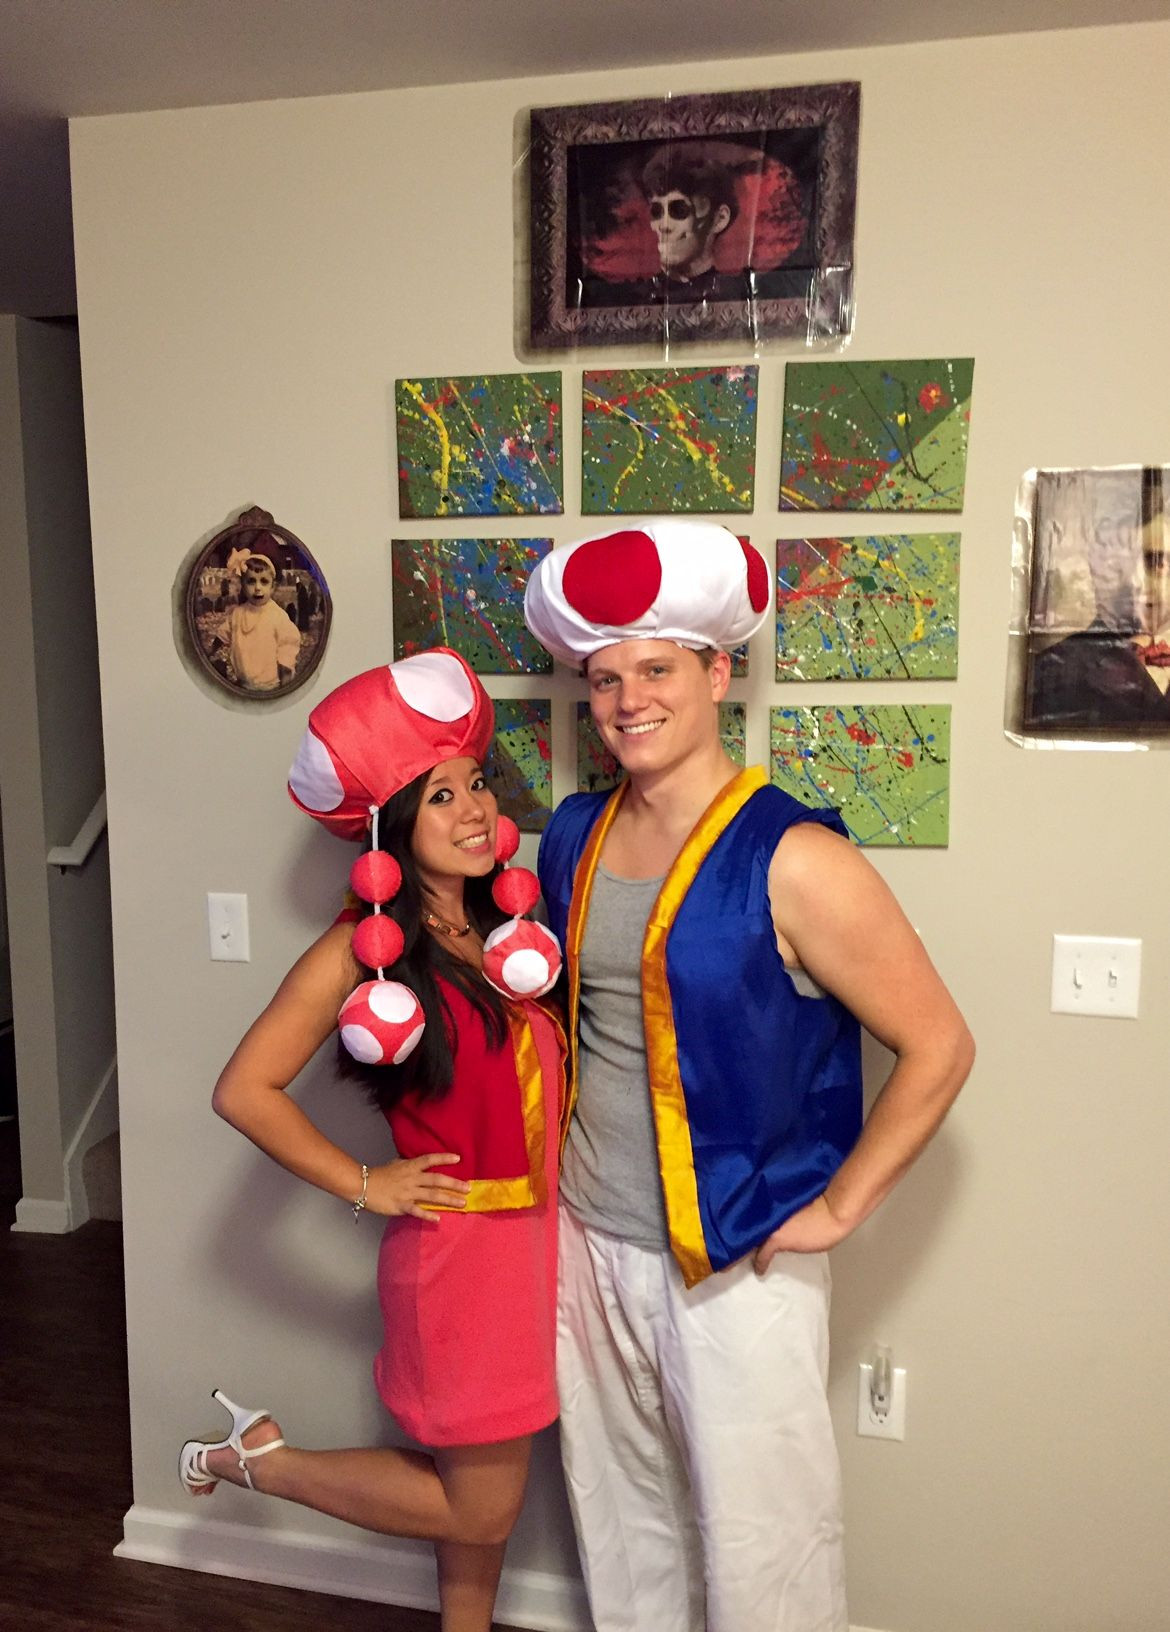 Super Mario Costume DIY  Super Mario Bros Toad and Toadette couple s costume